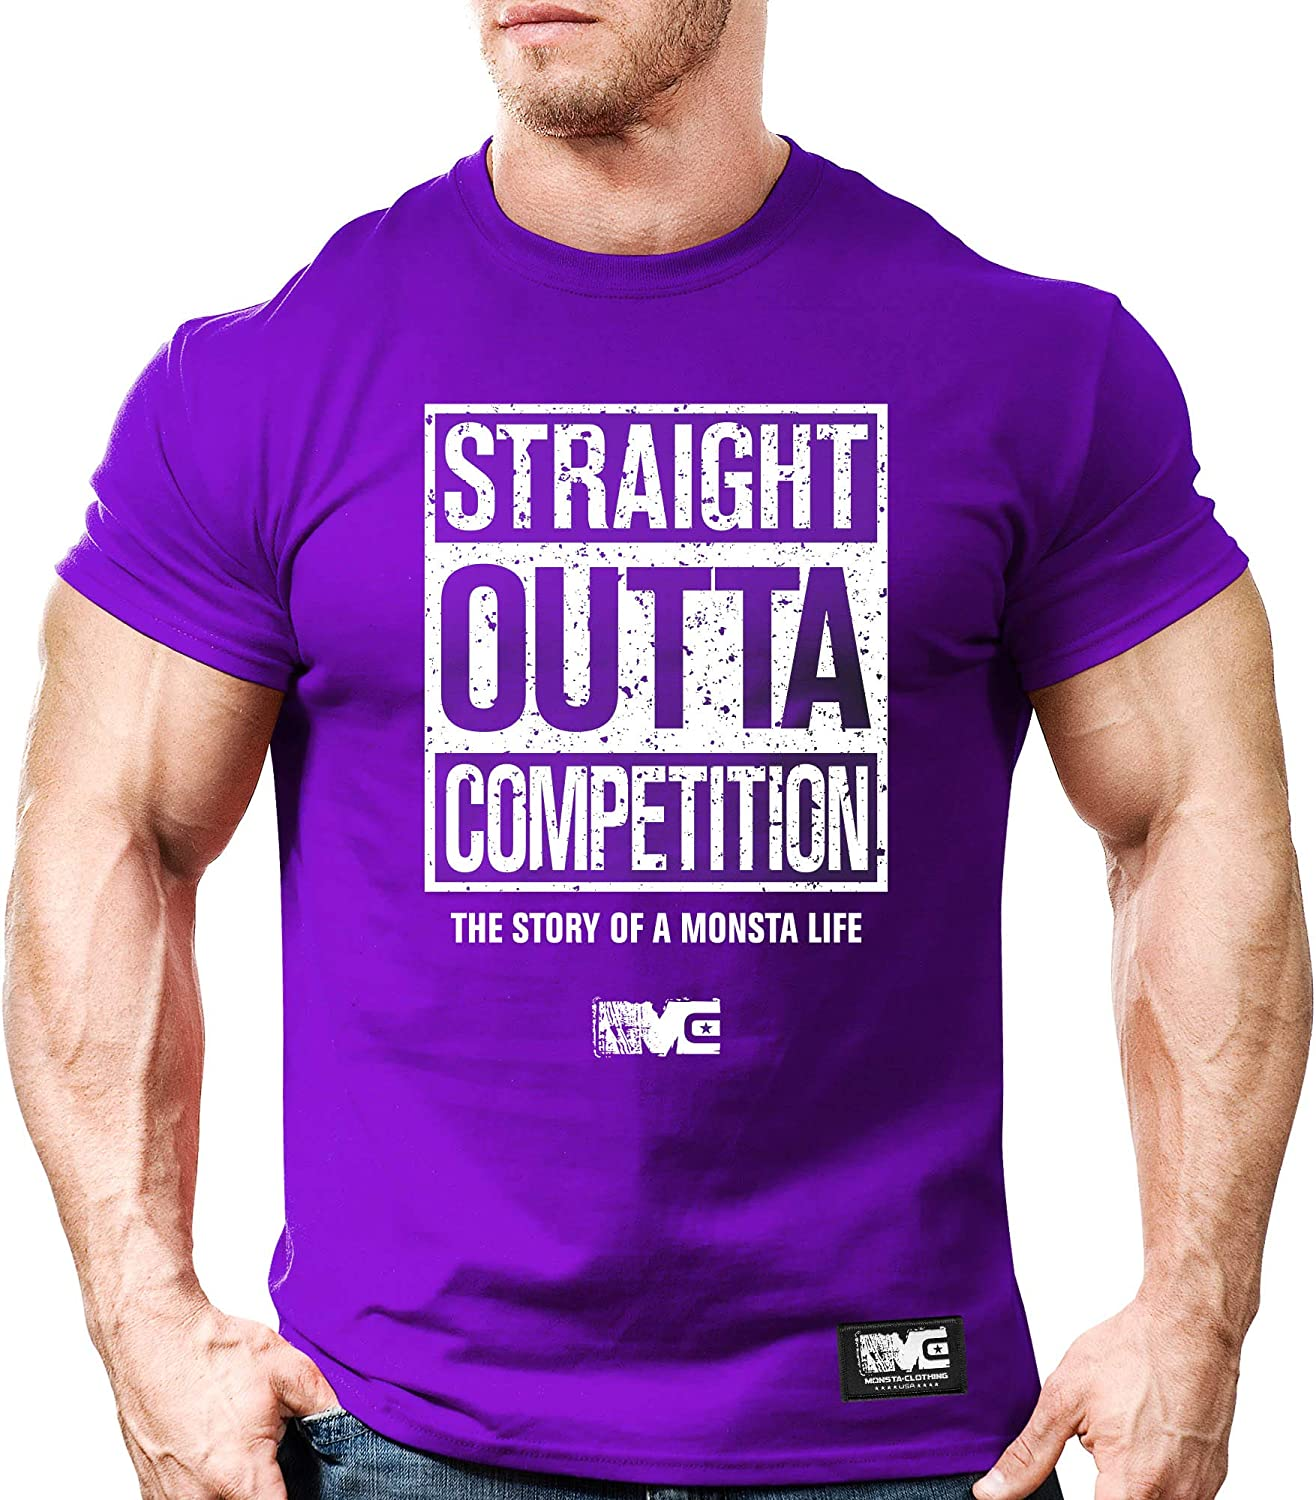 New Men/'s Monsta Clothing Fitness Gym T-shirt Straight Outta Competition